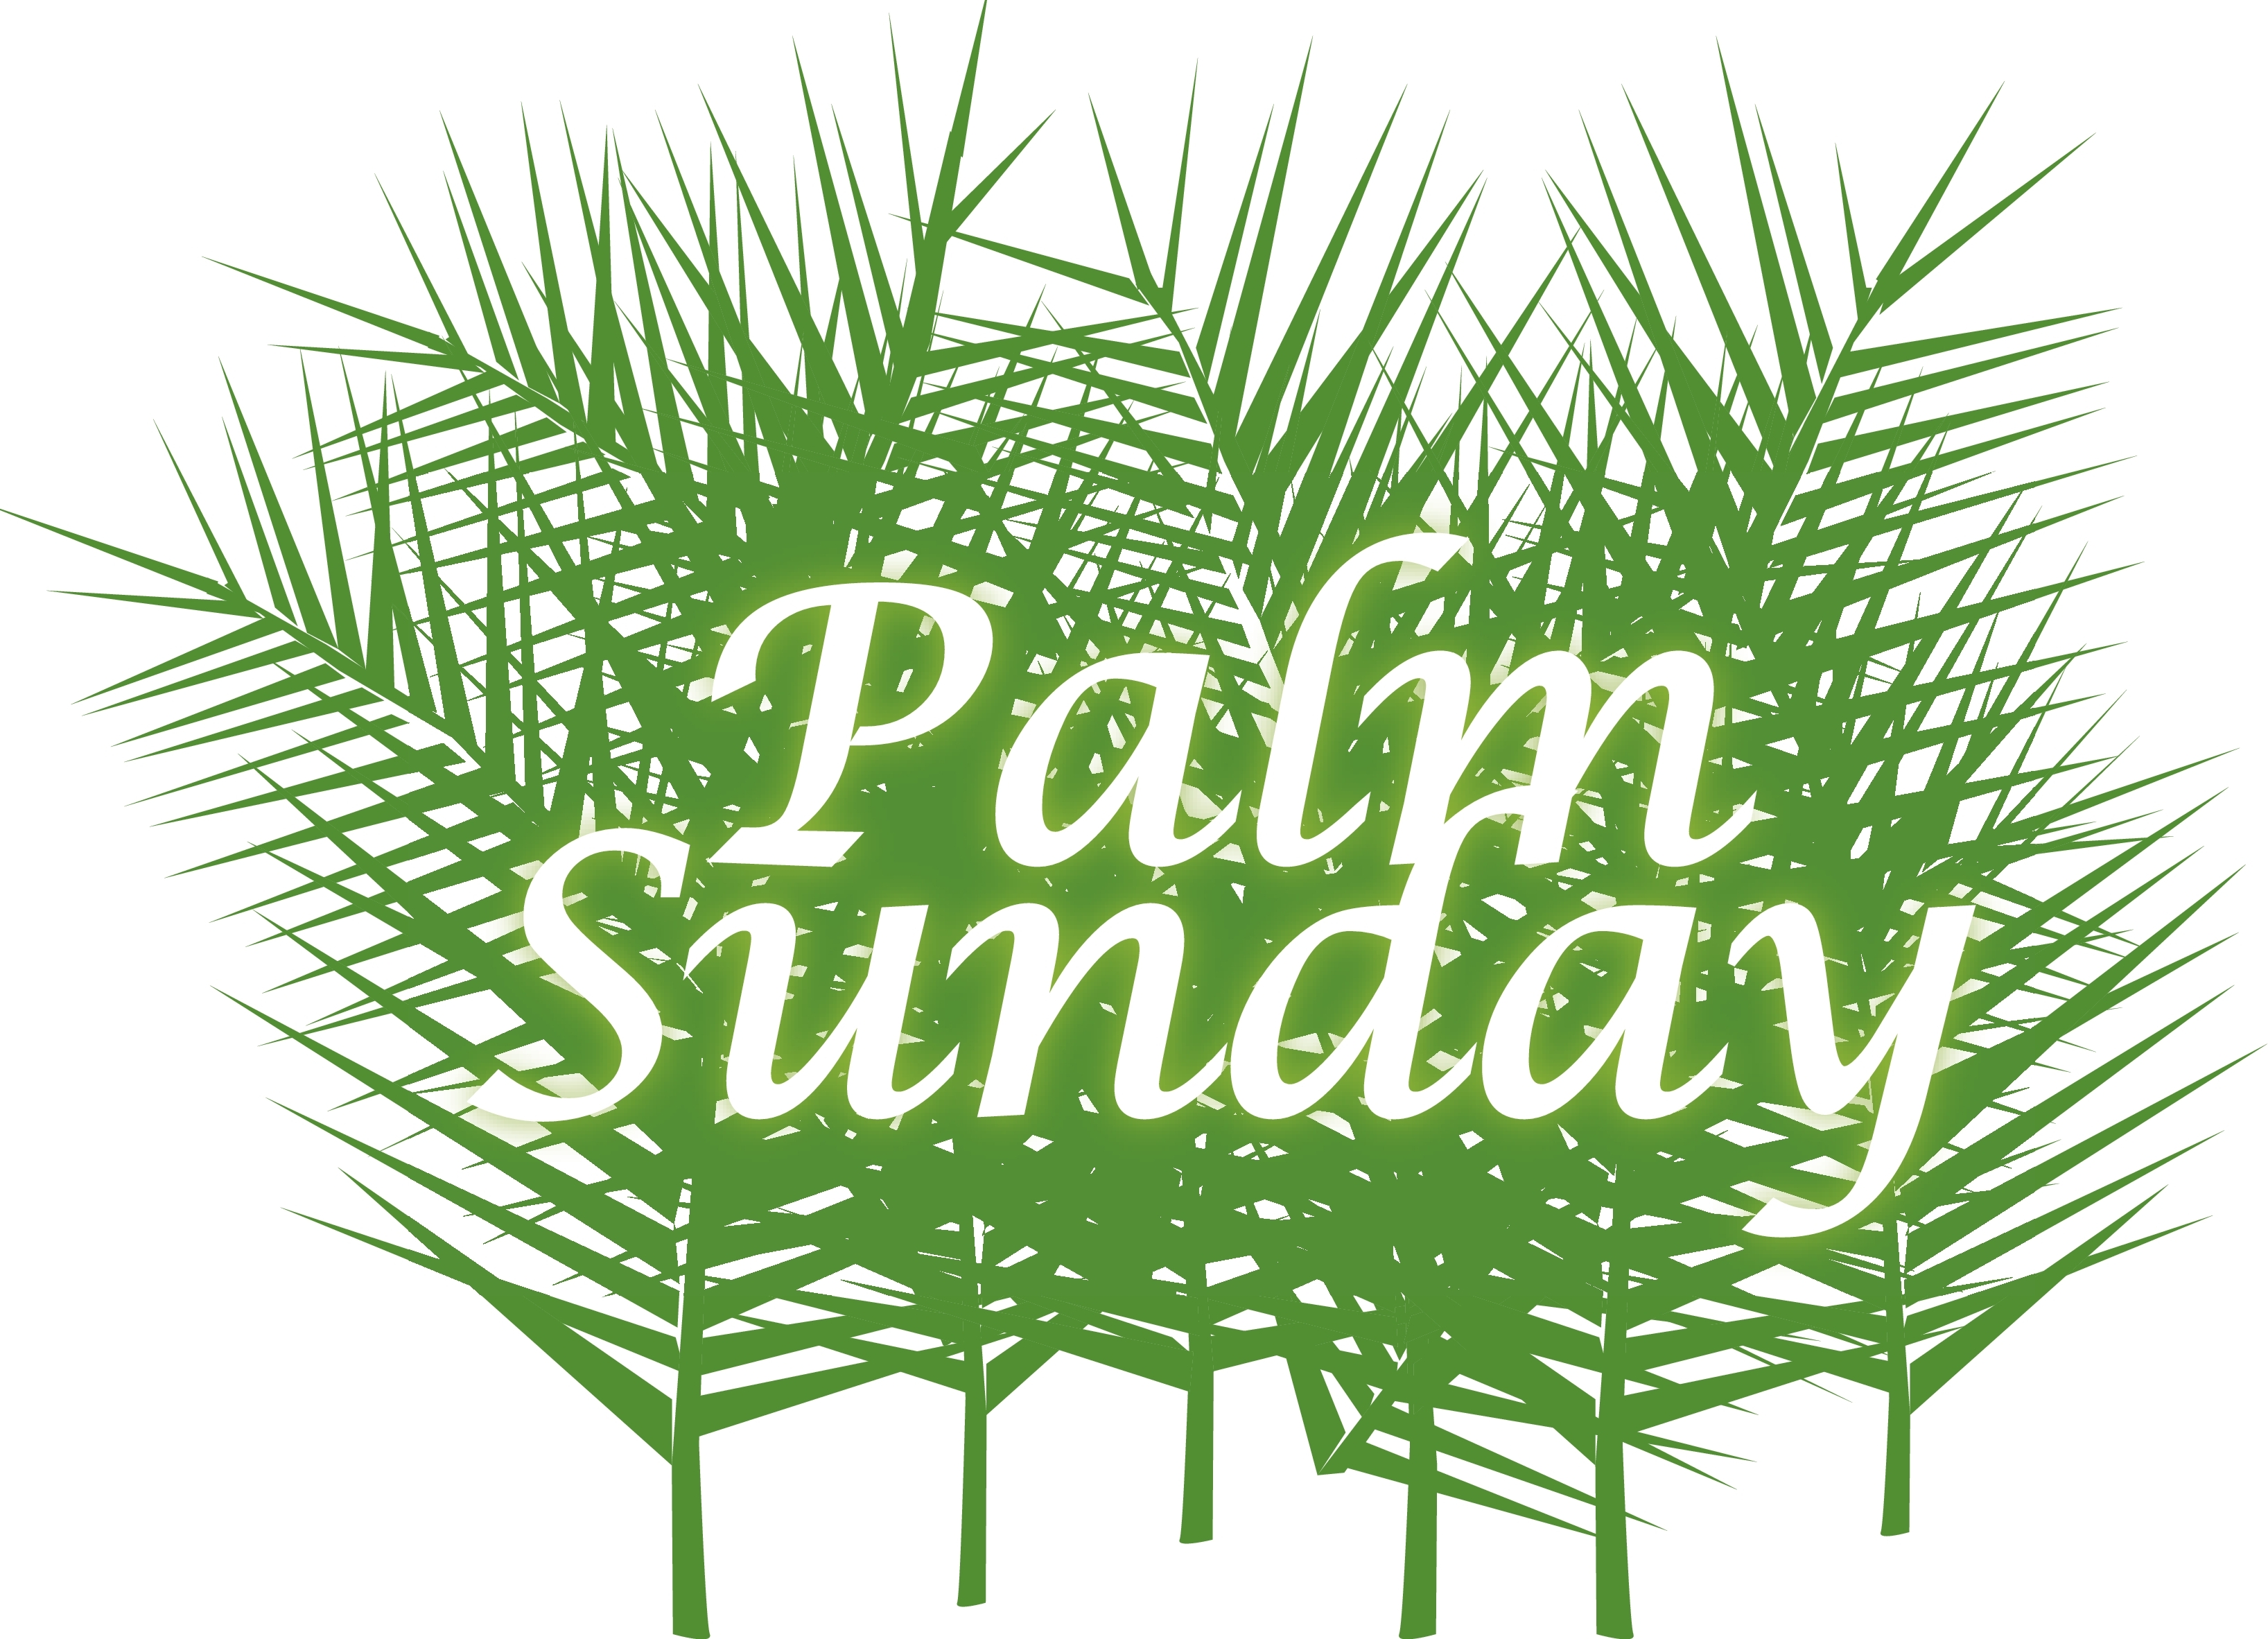 Palm sunday wallpaper for desktops wallpapersafari palm sunday greetings 2015 wallpapers palm sunday wallpapers 2015 kristyandbryce Images